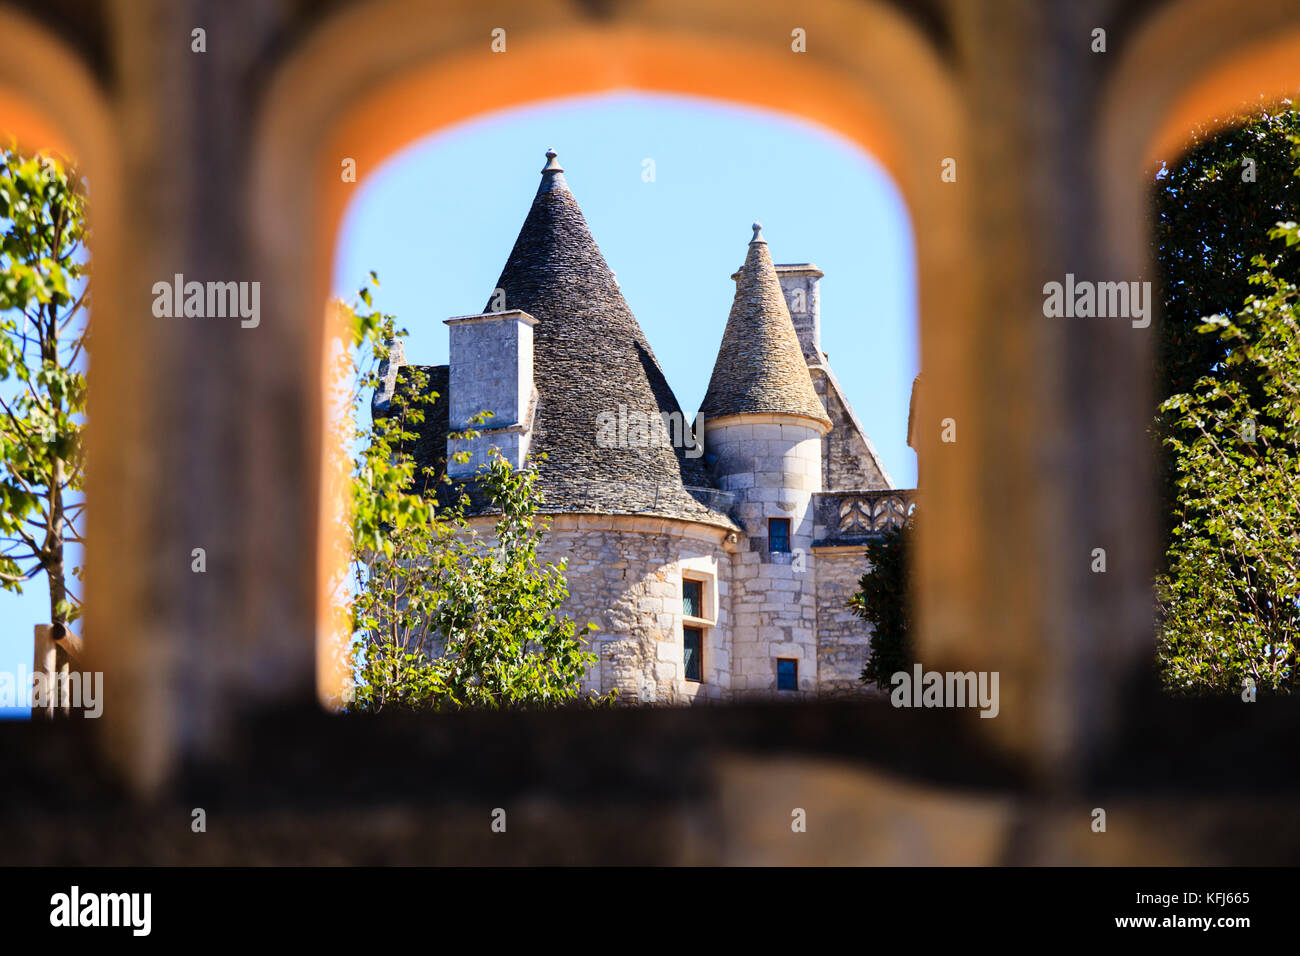 The Château des Milandes, home to Josephine Baker - Stock Image